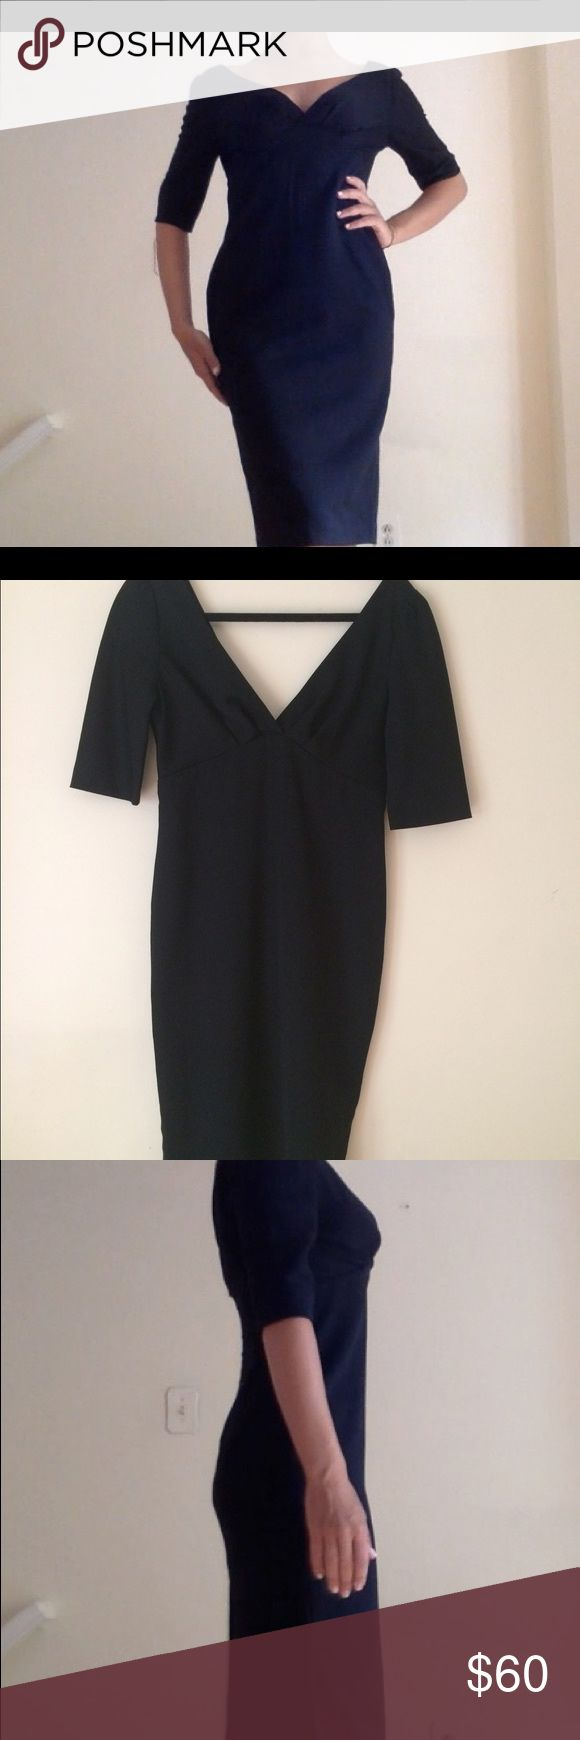 24 Hr sale! Massimo Dutti black wool dress Sz S Black, double V, sleeves fall to elbow, skirt falls to knee. Worn once. Size Small (2-4, errs to 4.) Make an offer! Massimo Dutti Dresses Midi